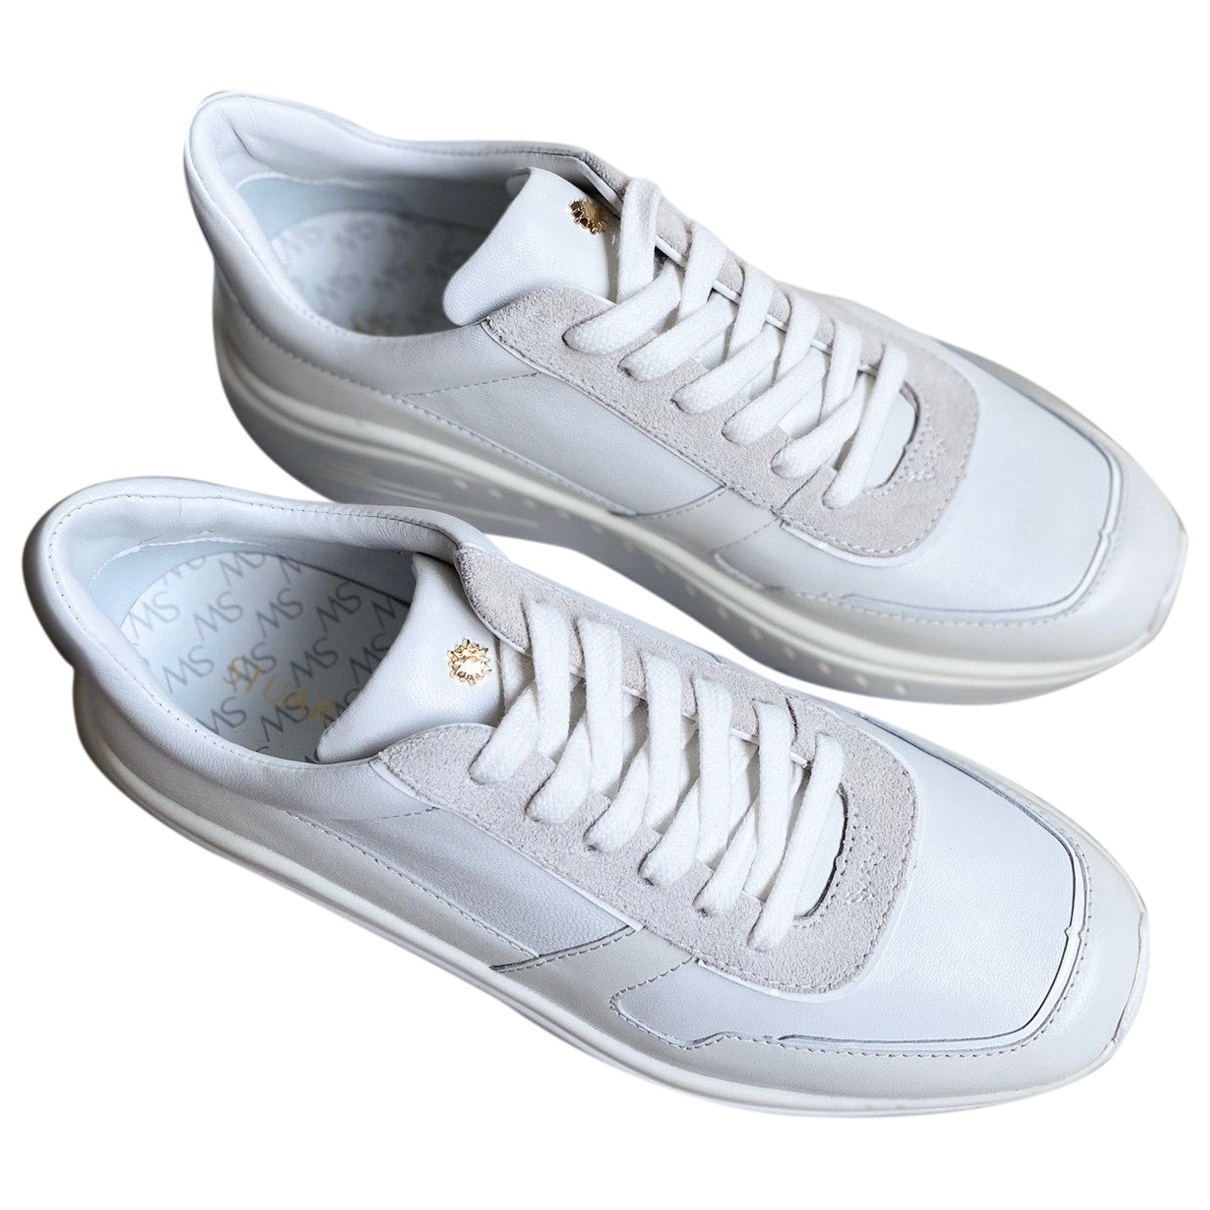 Stuart Weitzman \N White Leather Trainers for Women 36 EU